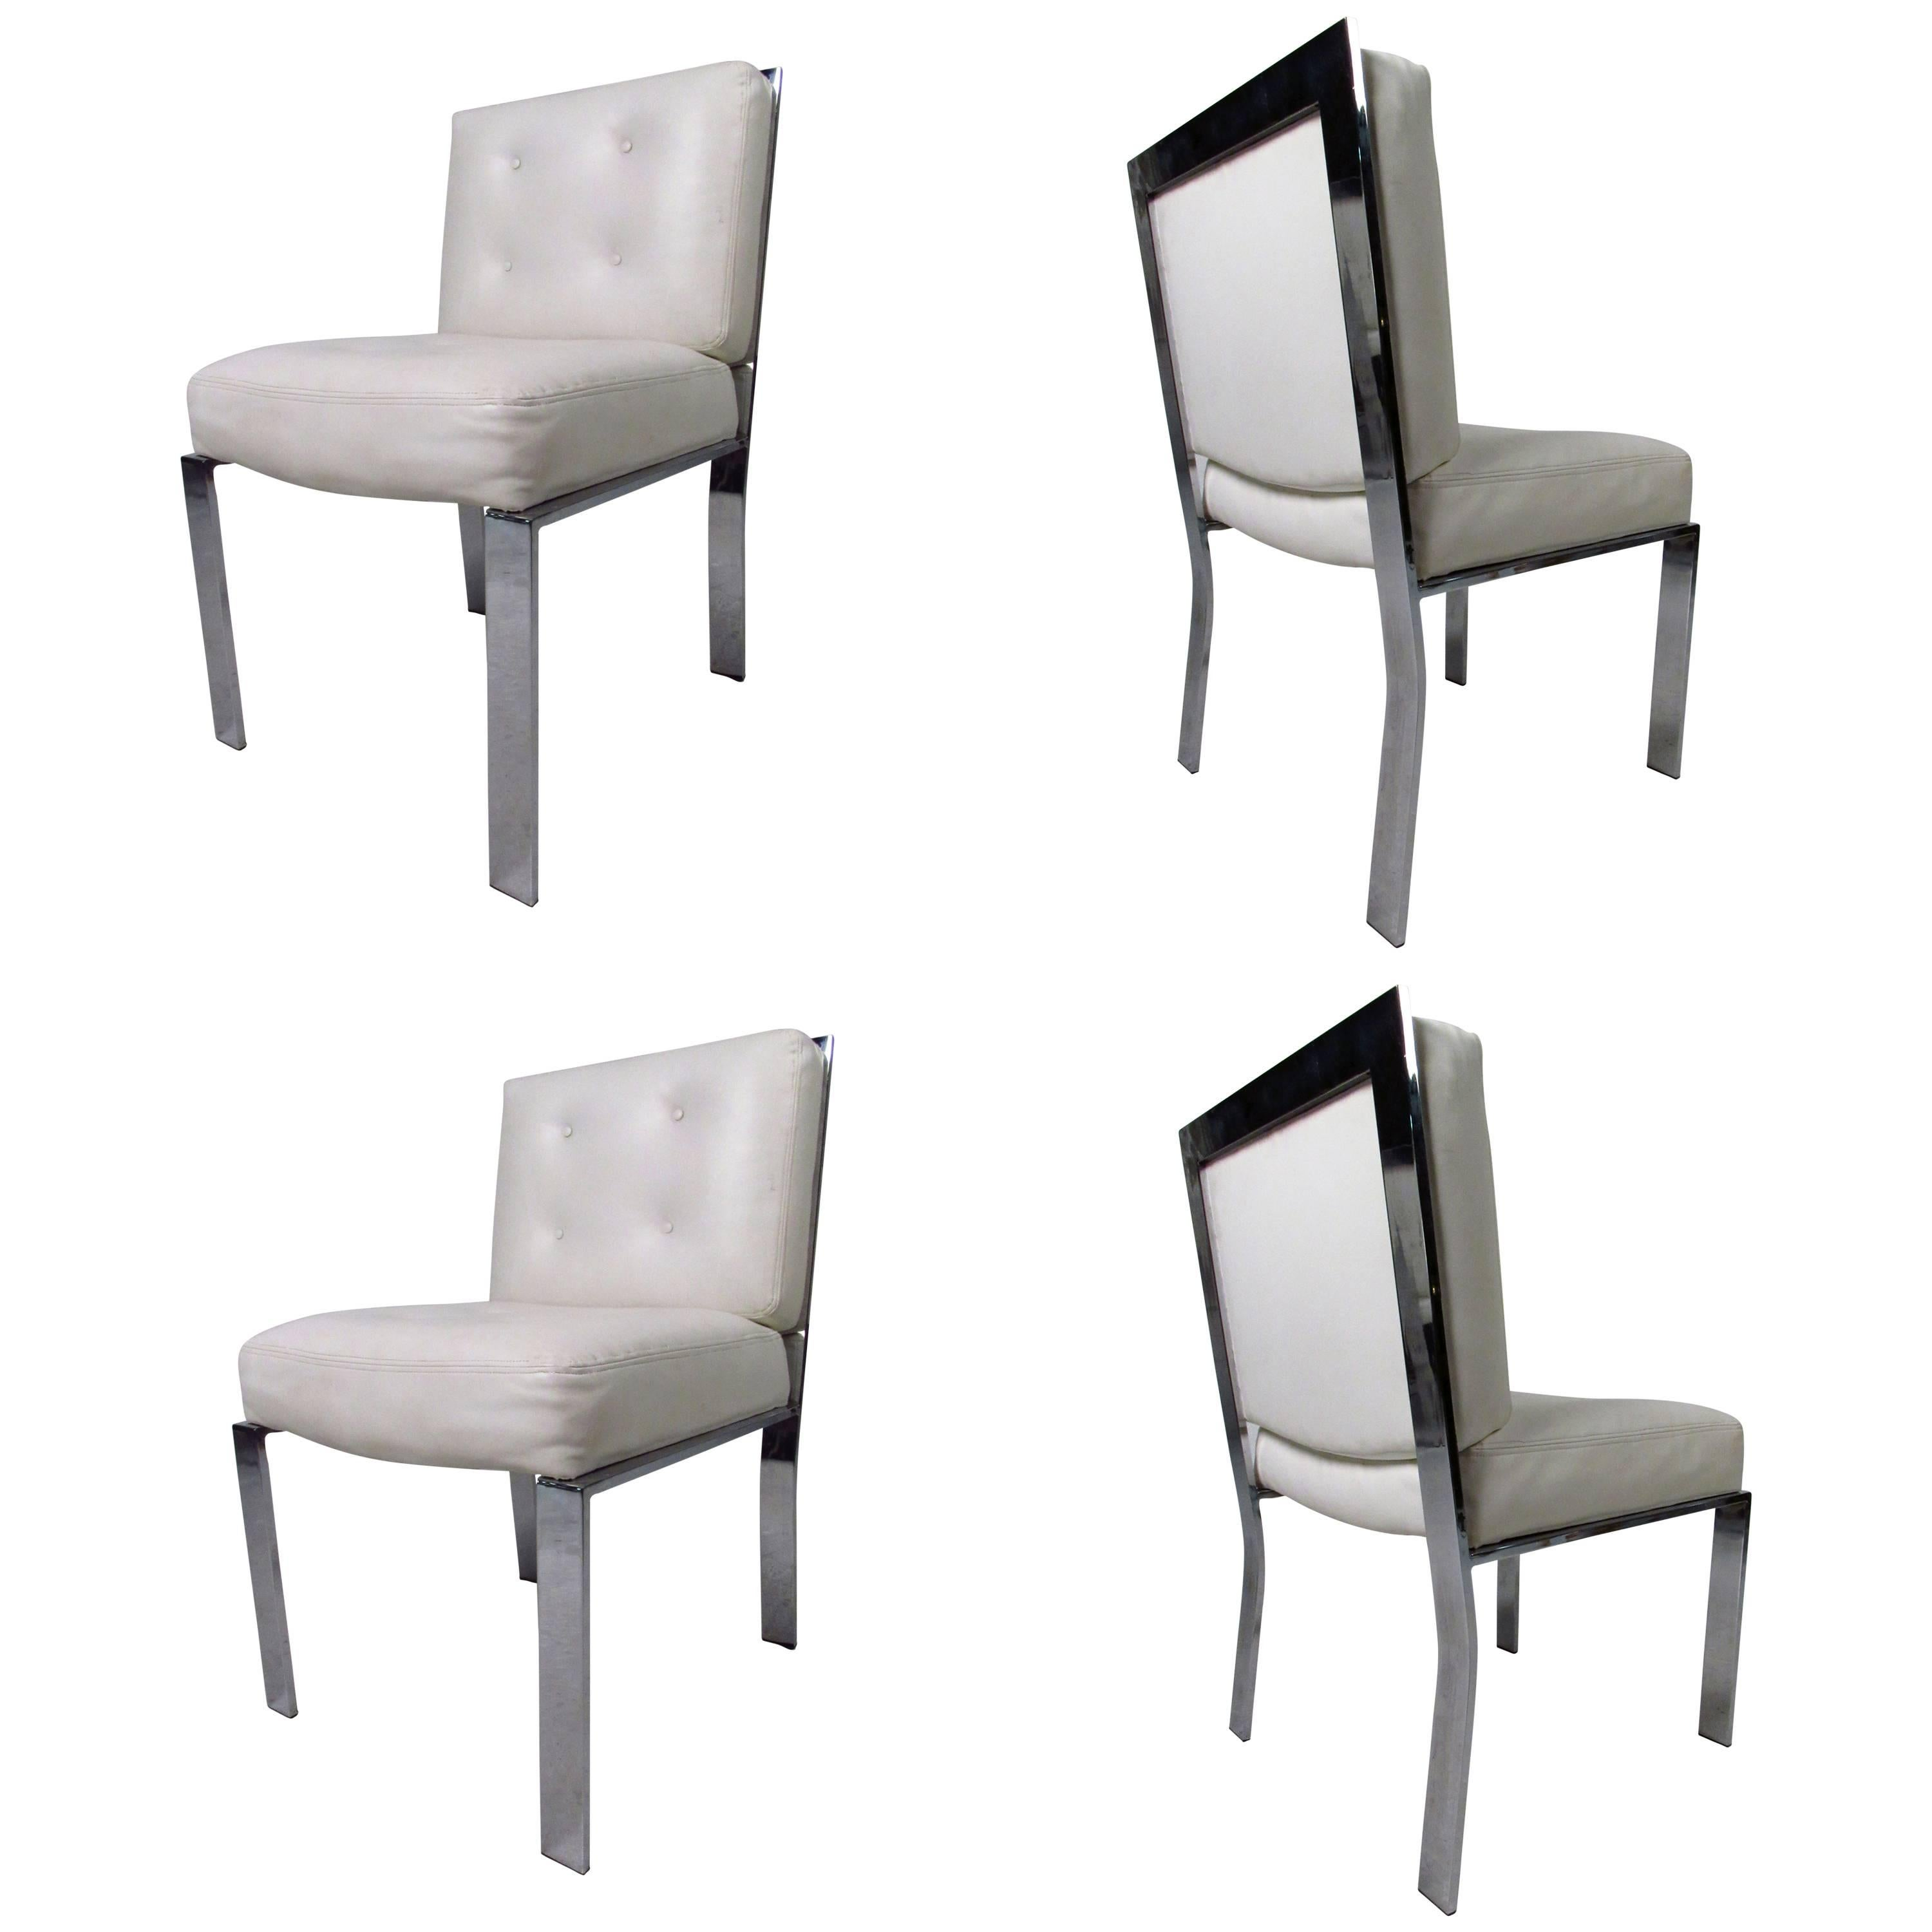 Mid-Century Modern Dining Chairs attributed to Milo Baughman